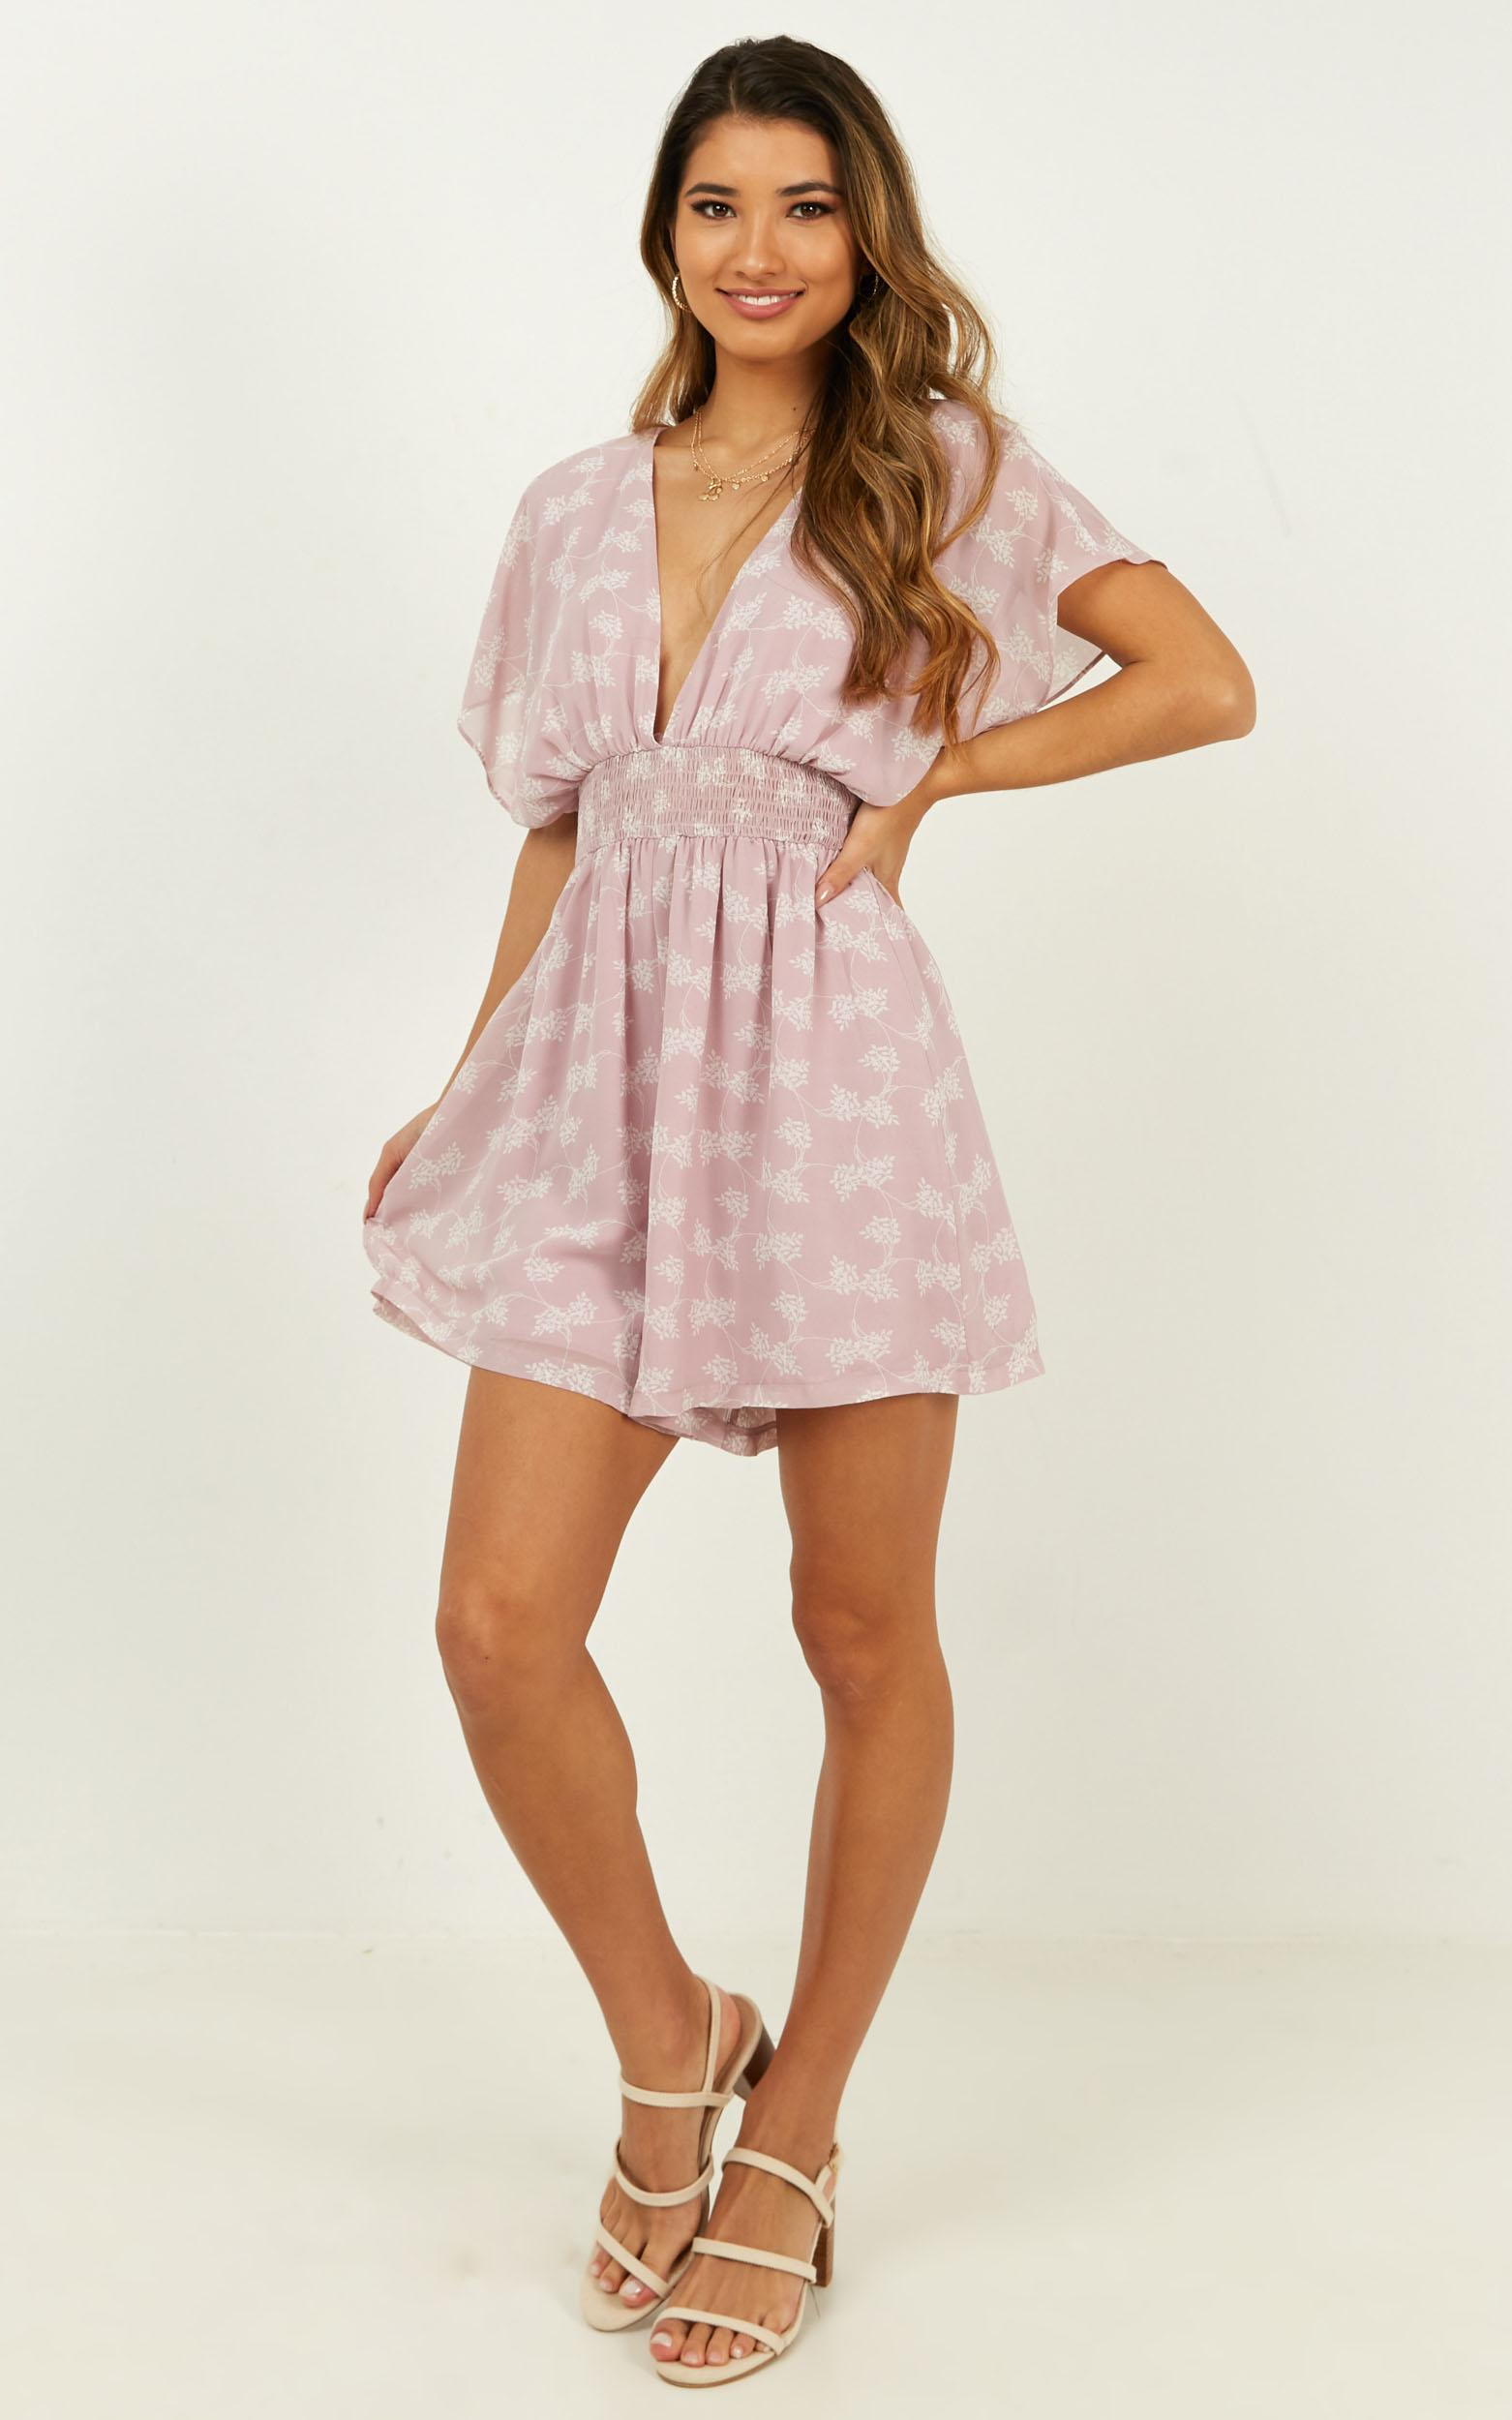 Sweetest Call Playsuit in blush print - 20 (XXXXL), Blush, hi-res image number null